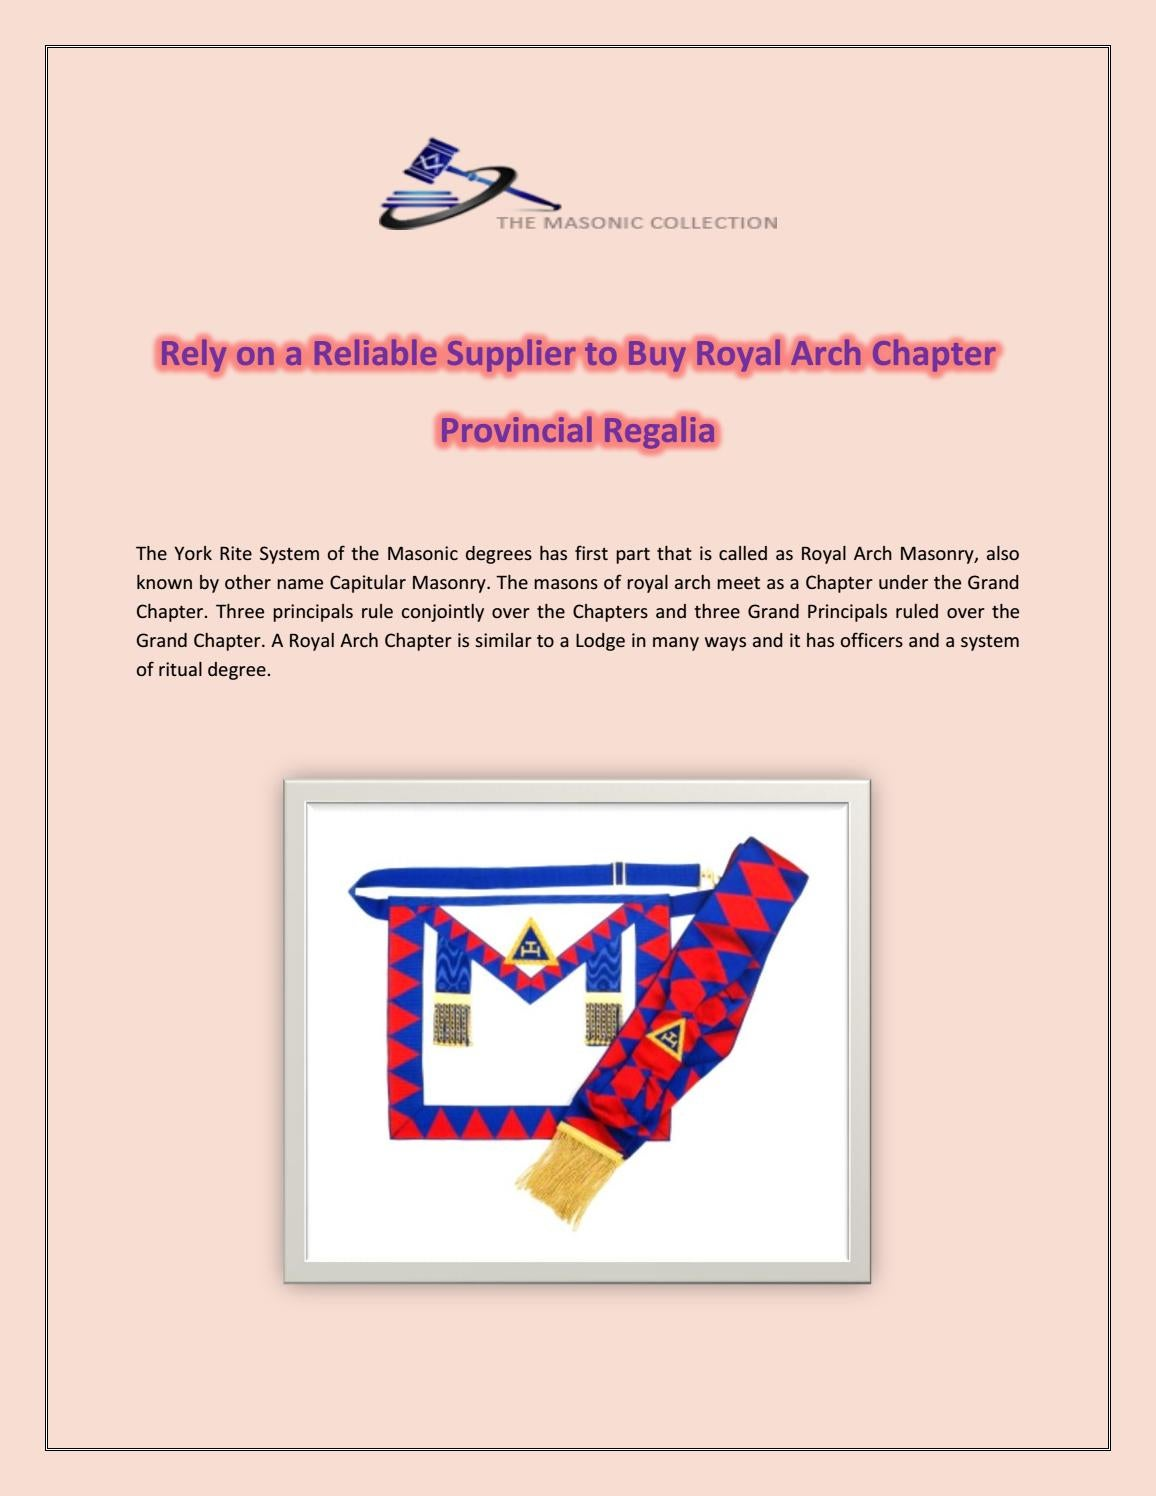 Rely on a Reliable Supplier to Buy Royal Arch Chapter